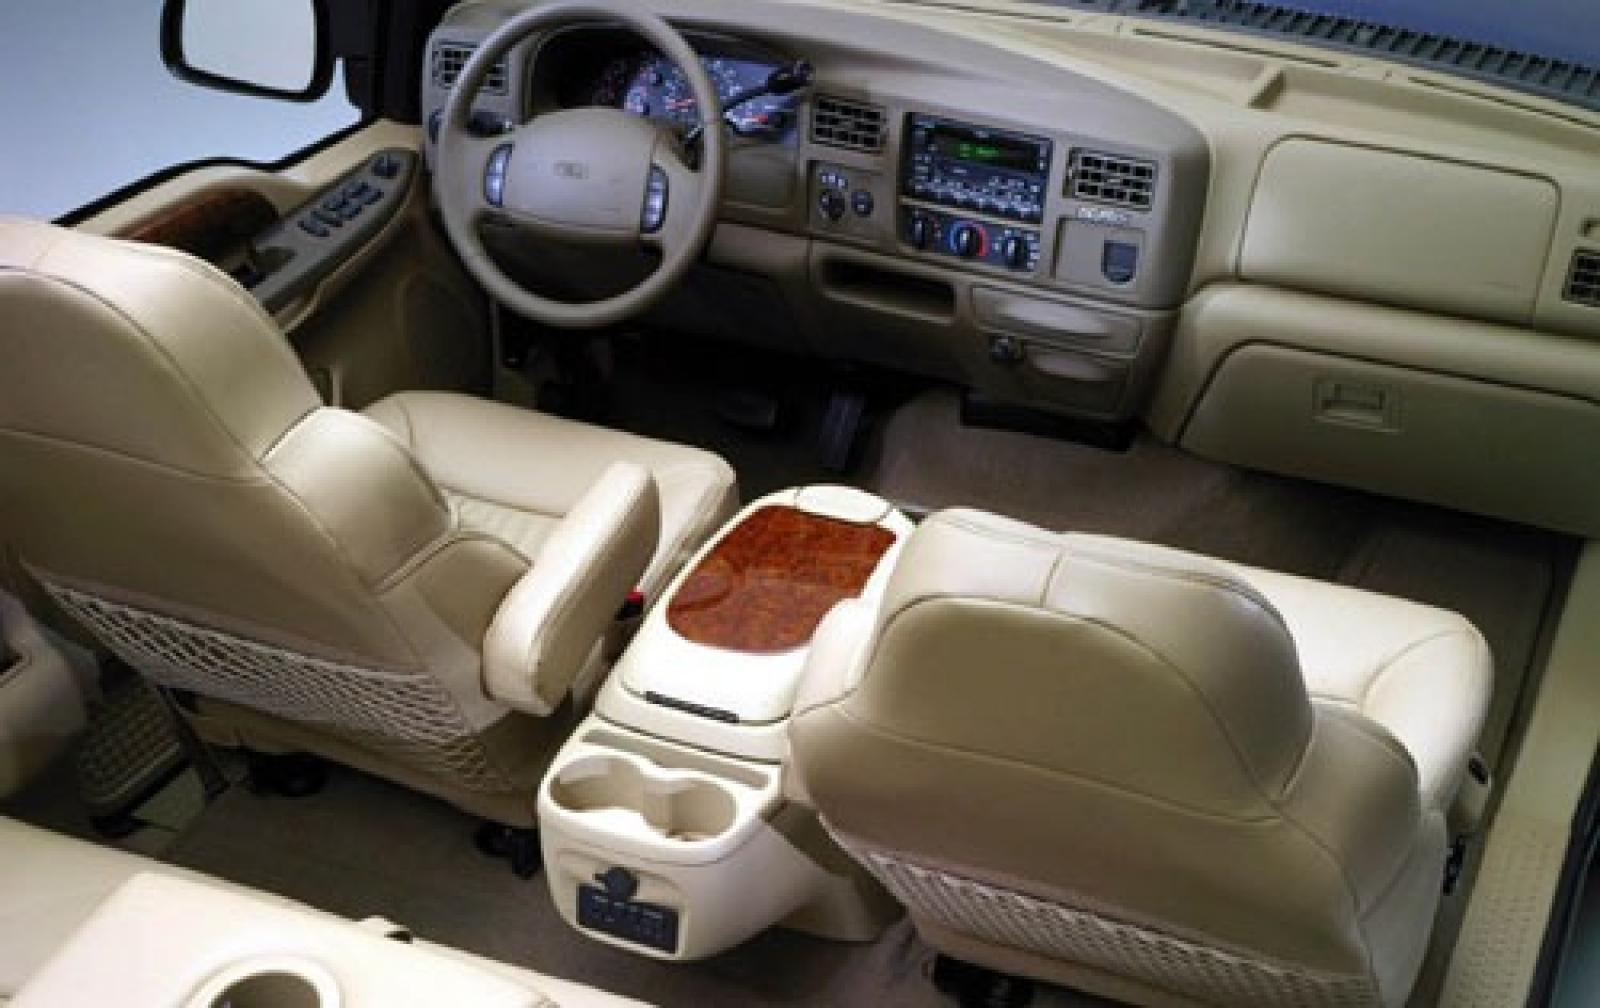 800 1024 1280 1600 Origin 2001 Ford Excursion ...